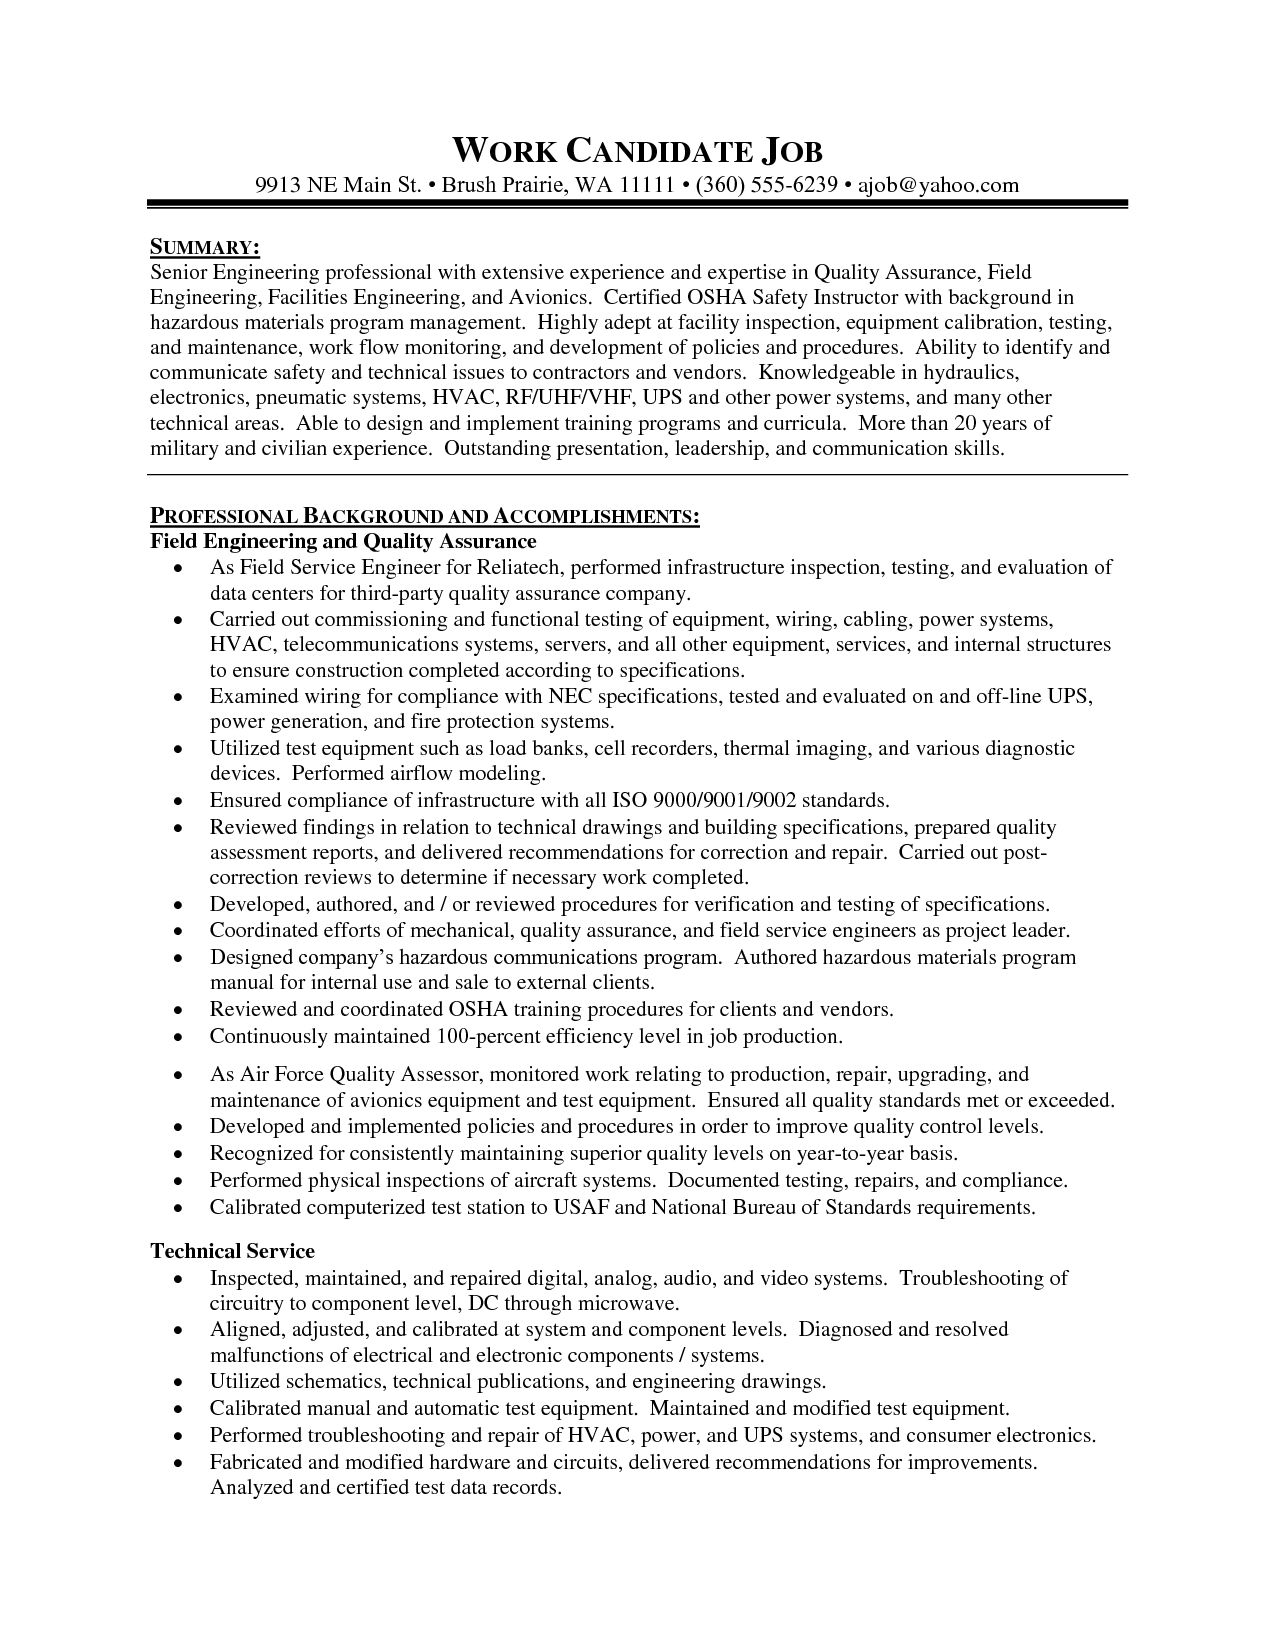 Supervisor Job Description For Resume Resume Production Manager Summary Supervisor Pin Pinterest  Home